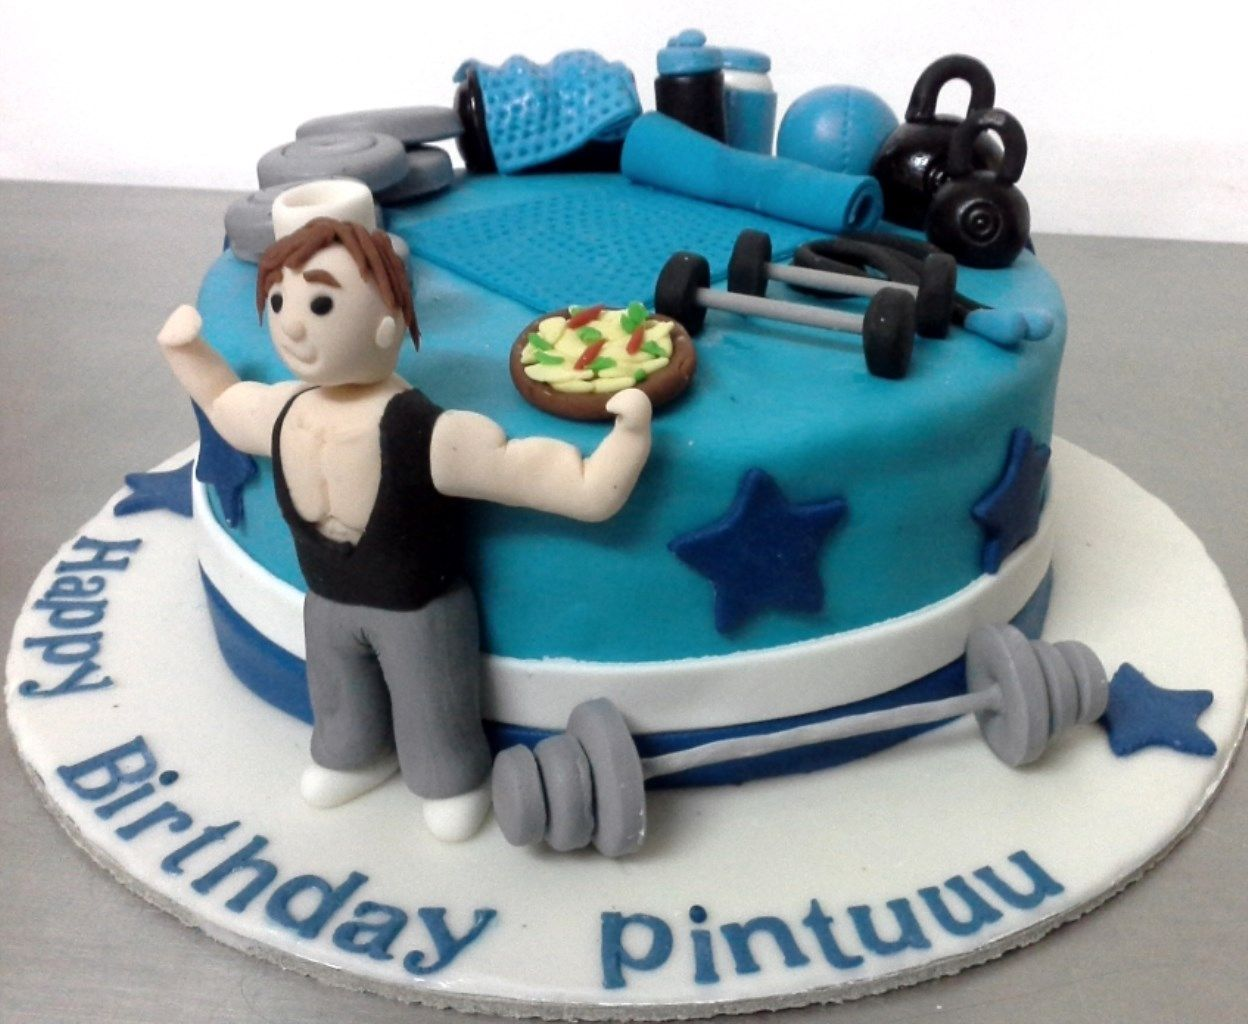 Stupendous Pintoscakegym Cake Birthday Cake With Photo Gym Cake Personalised Birthday Cards Epsylily Jamesorg